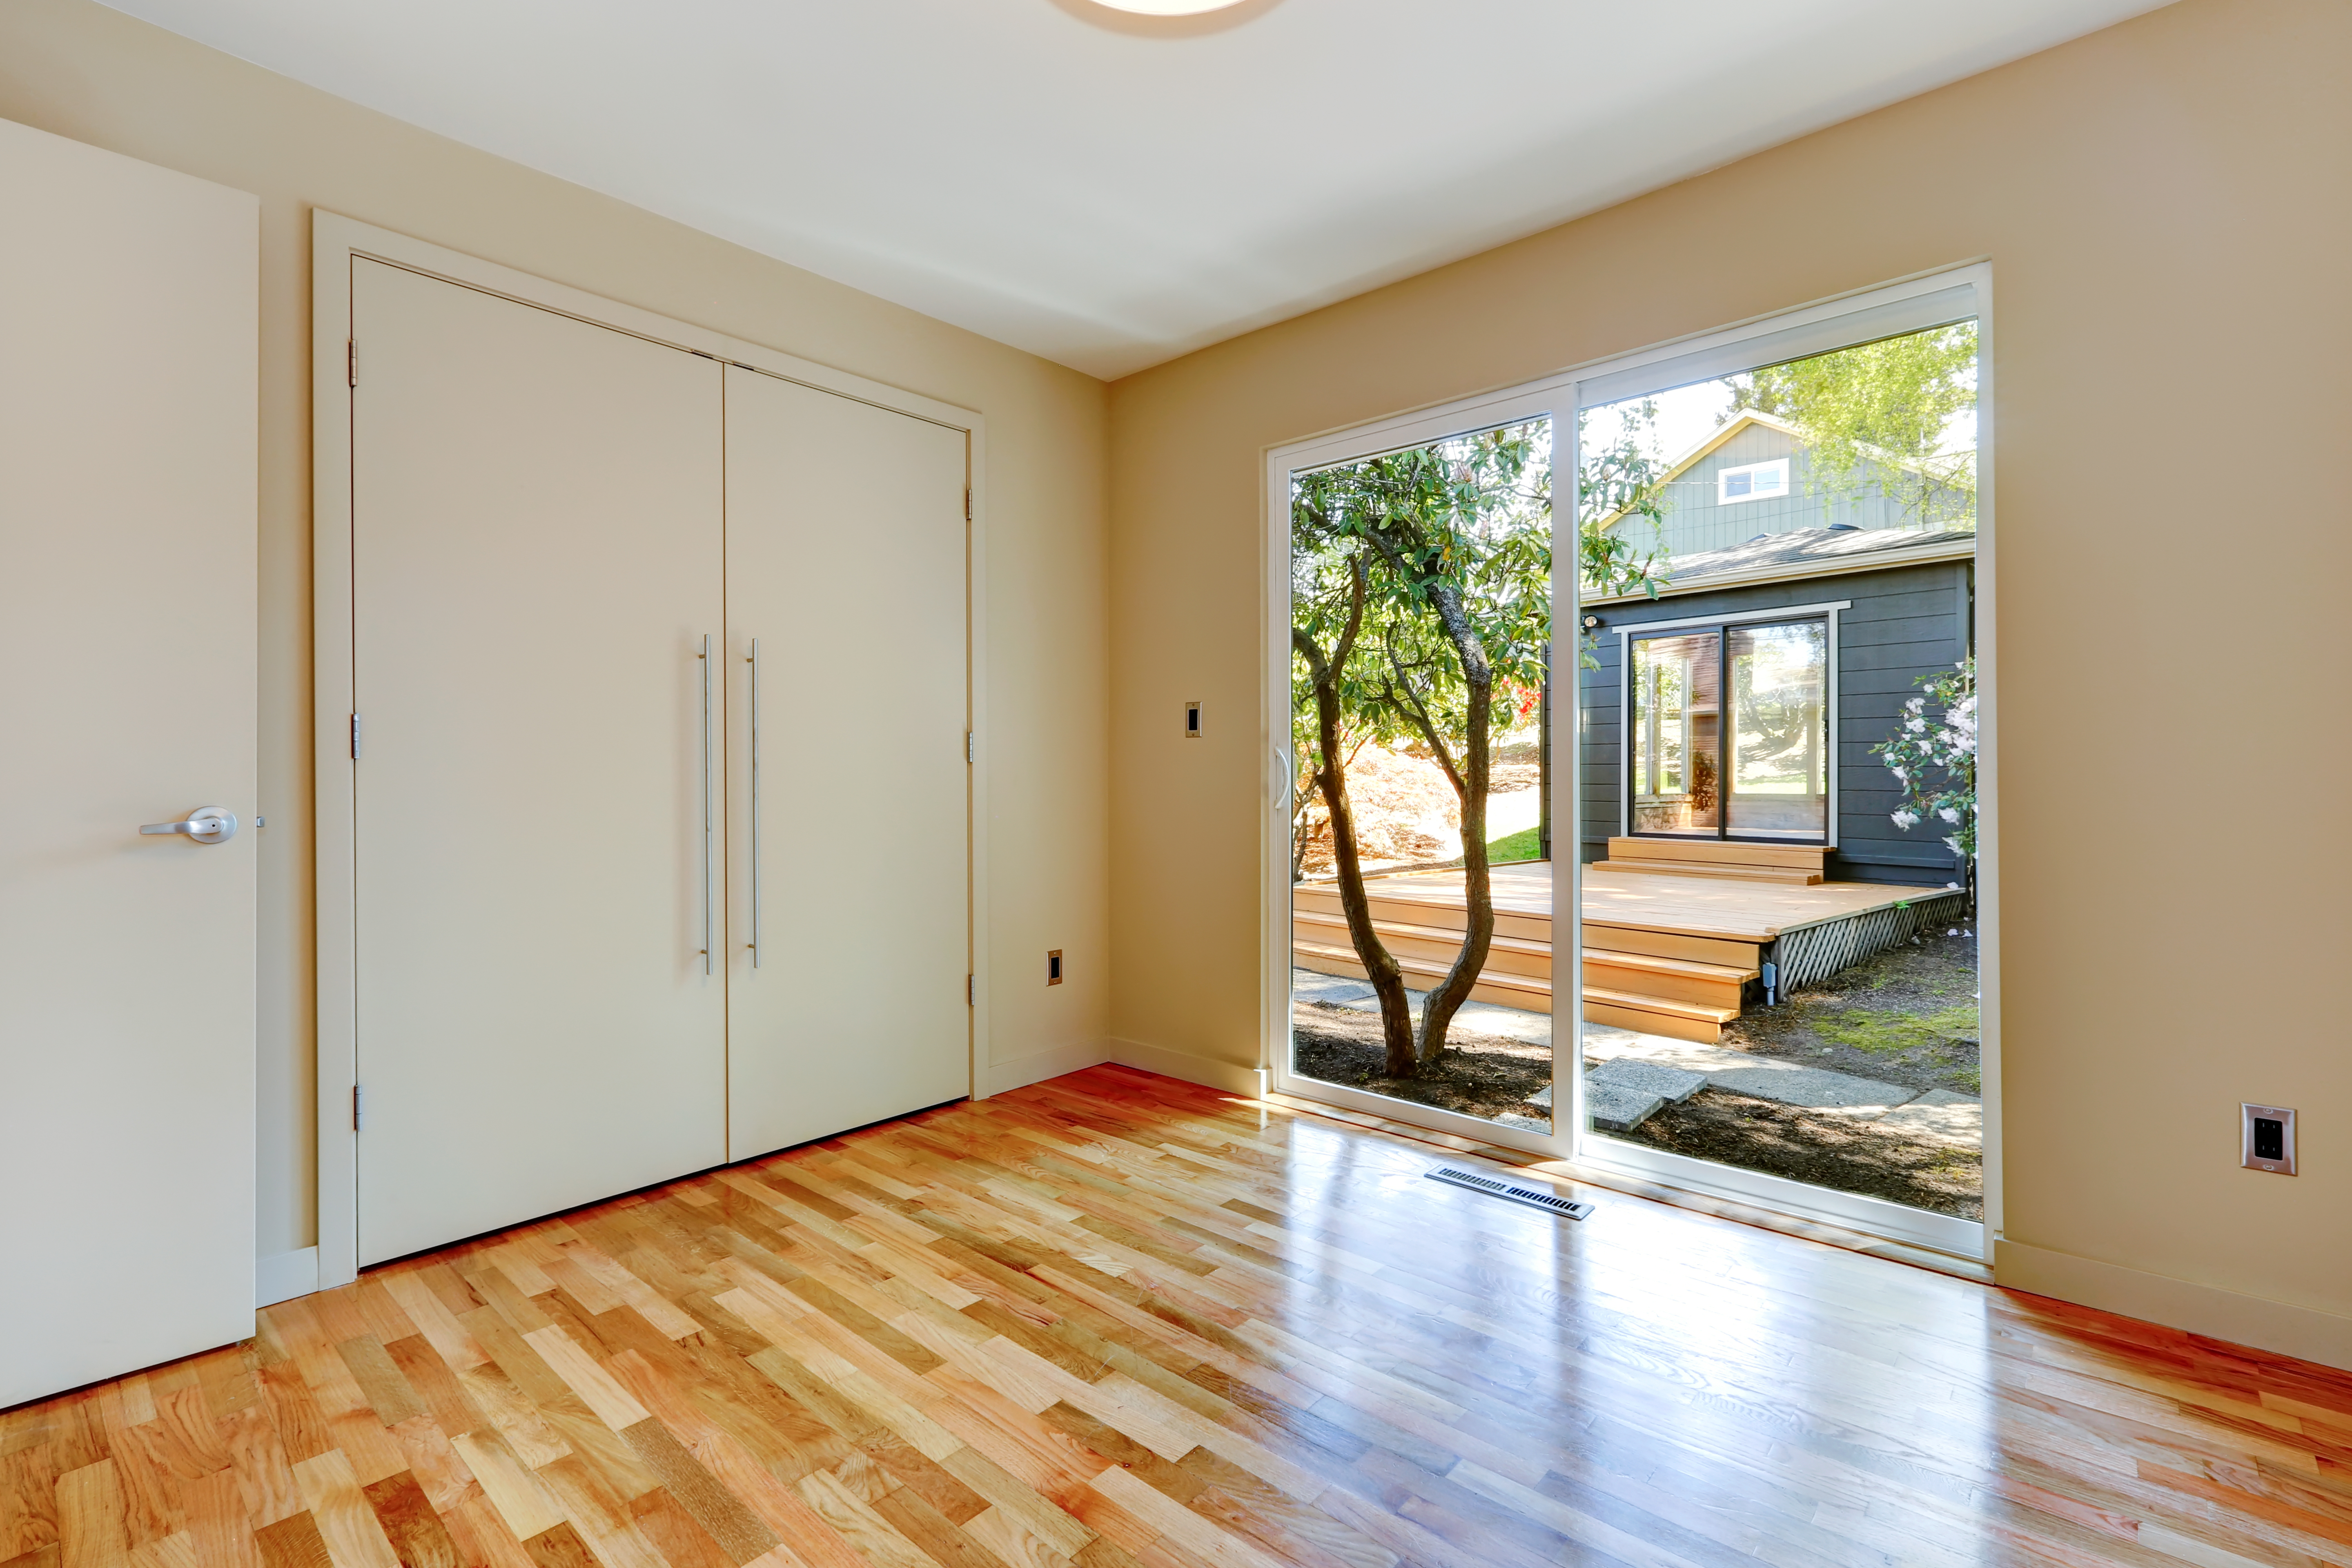 3840 #883814 Patio Door Is The Most Energy Efficient Smooth And Durable  Patio Pic Most